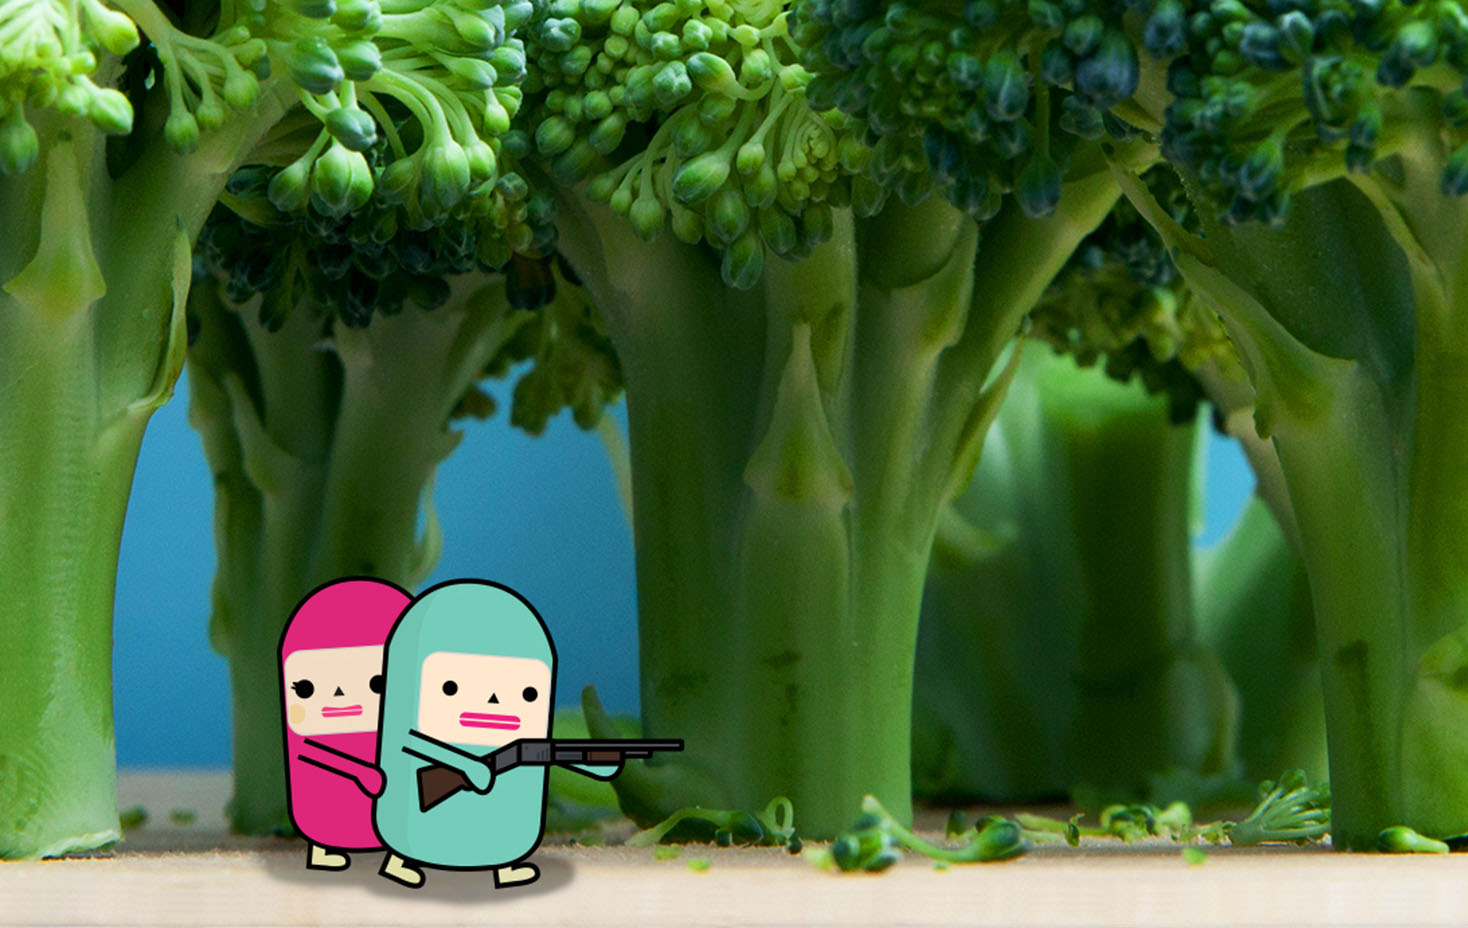 Capsubeans Instagram VR Image - Cartoon Character Licensing Kids - Cute Couple Hunting in broccoli forest - Rikki Mobile